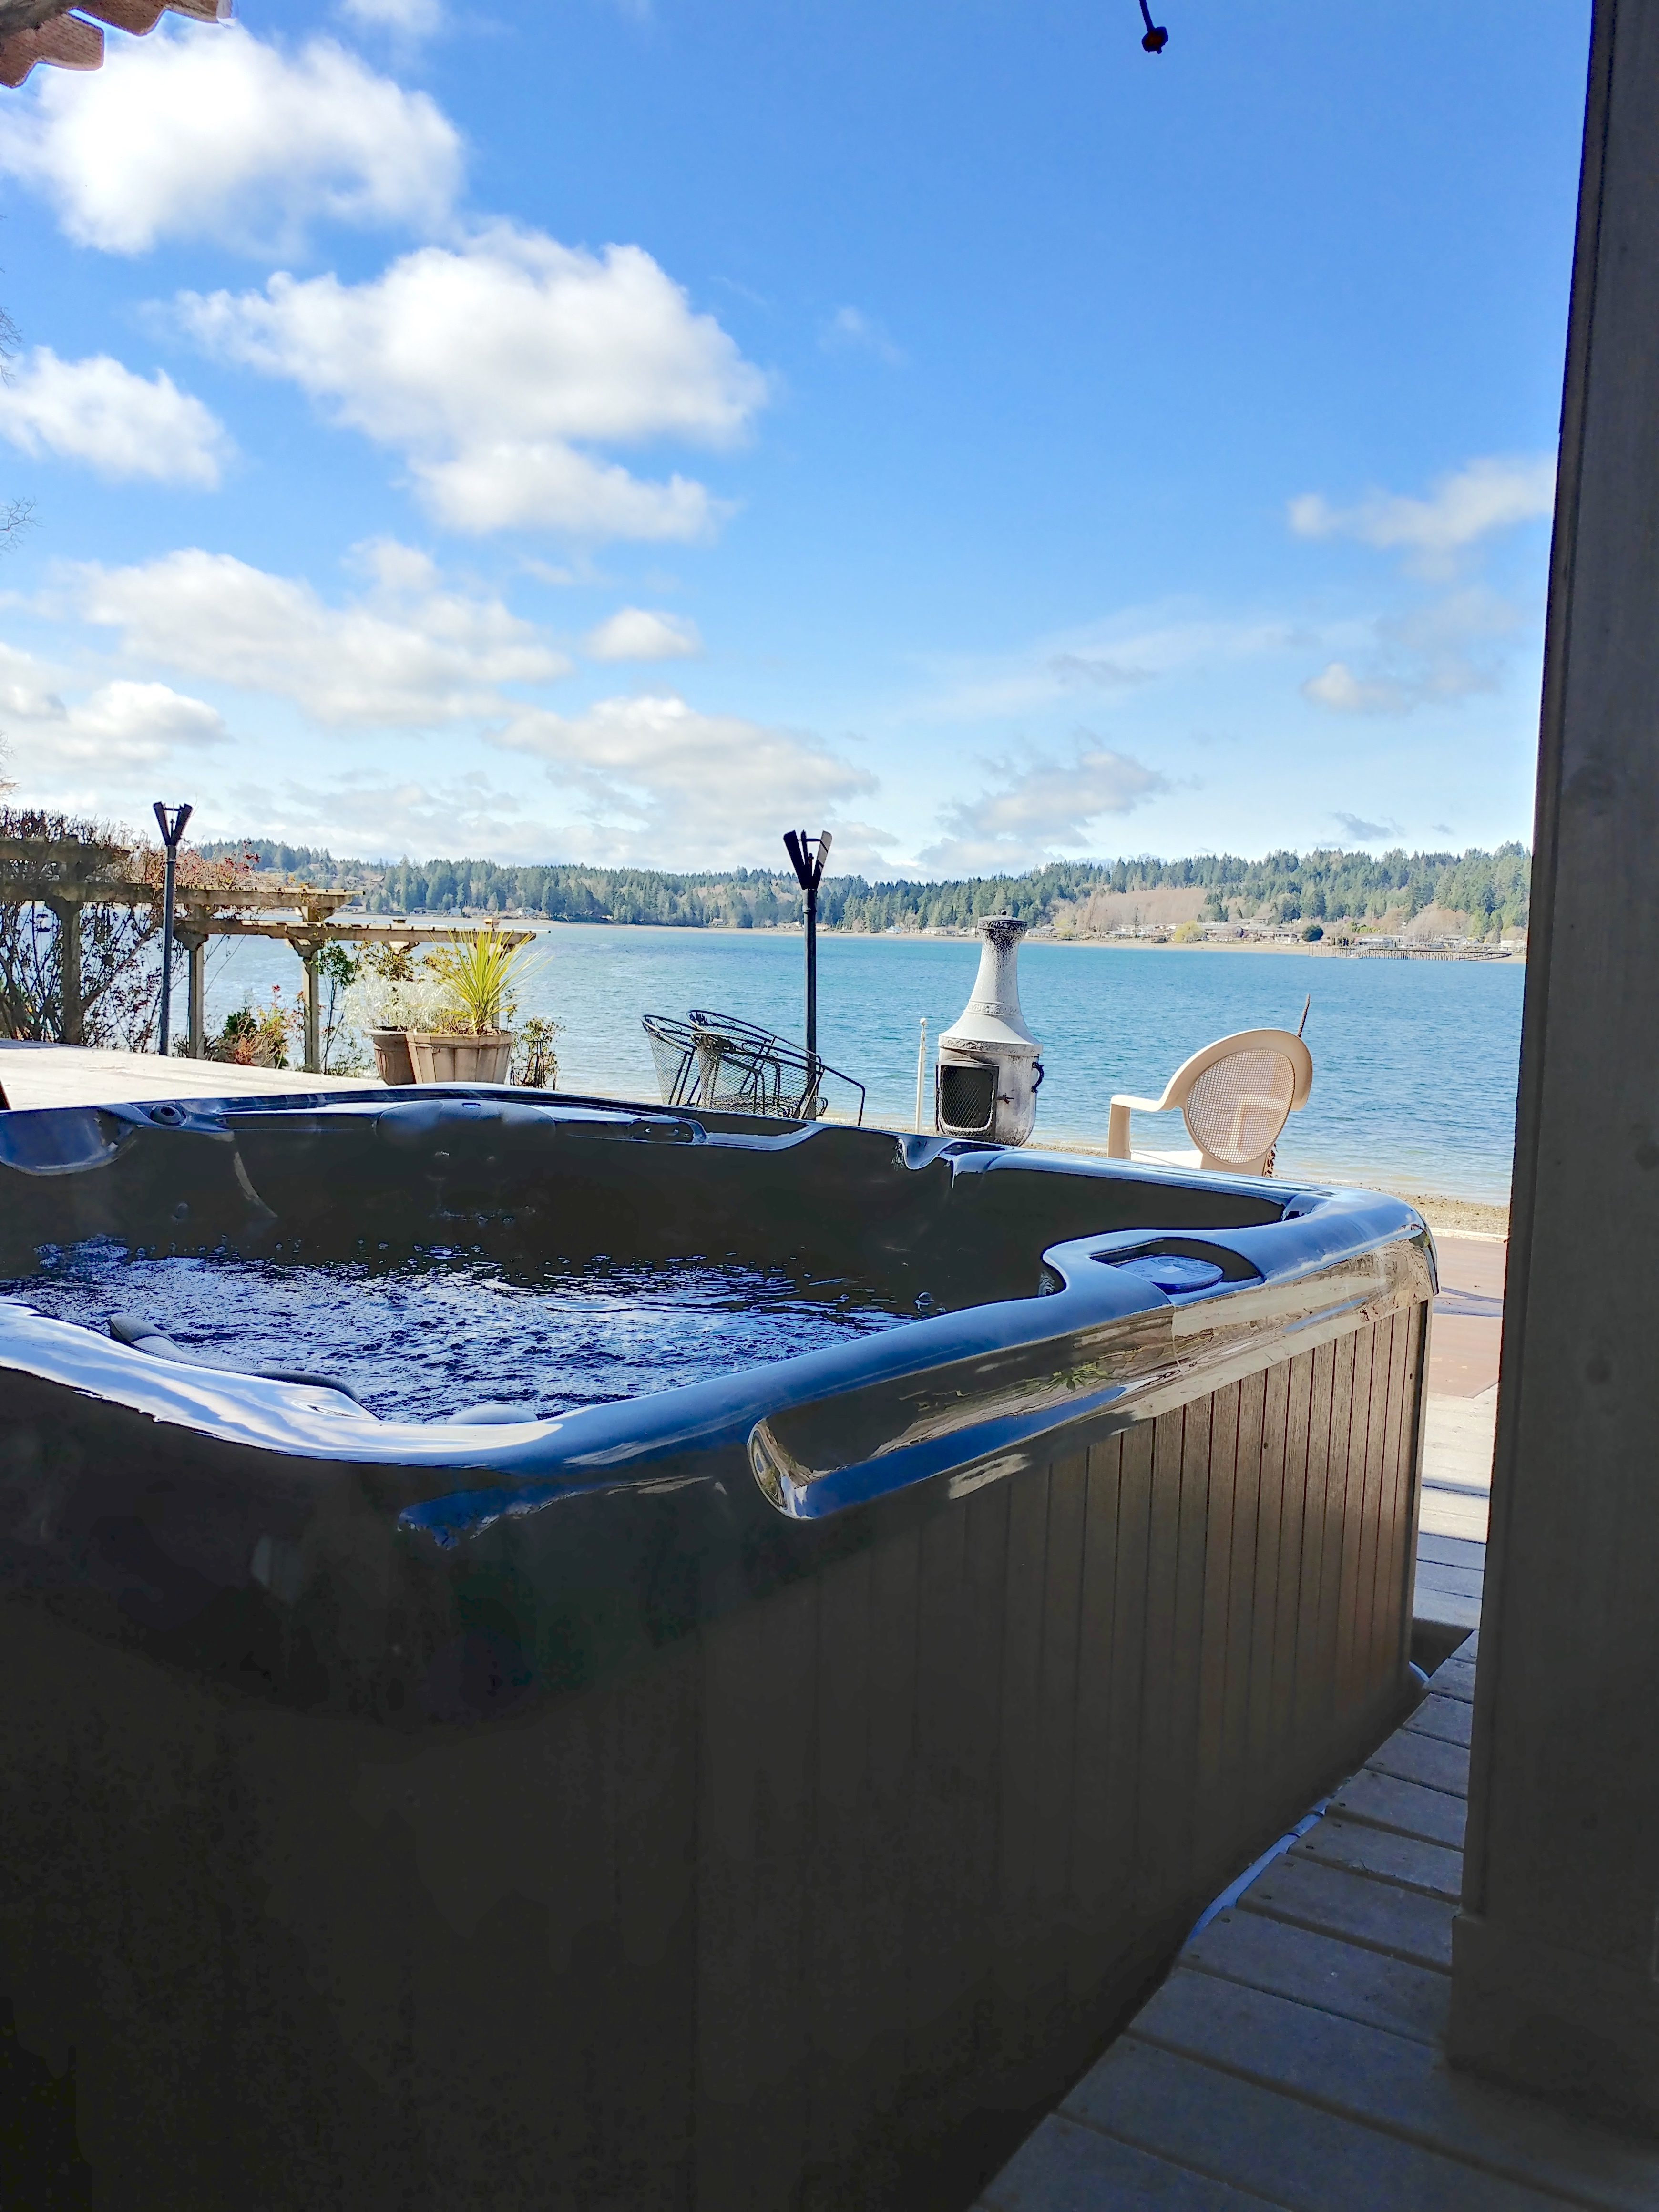 5-things-you-should-never-do-to-your-hot-tub